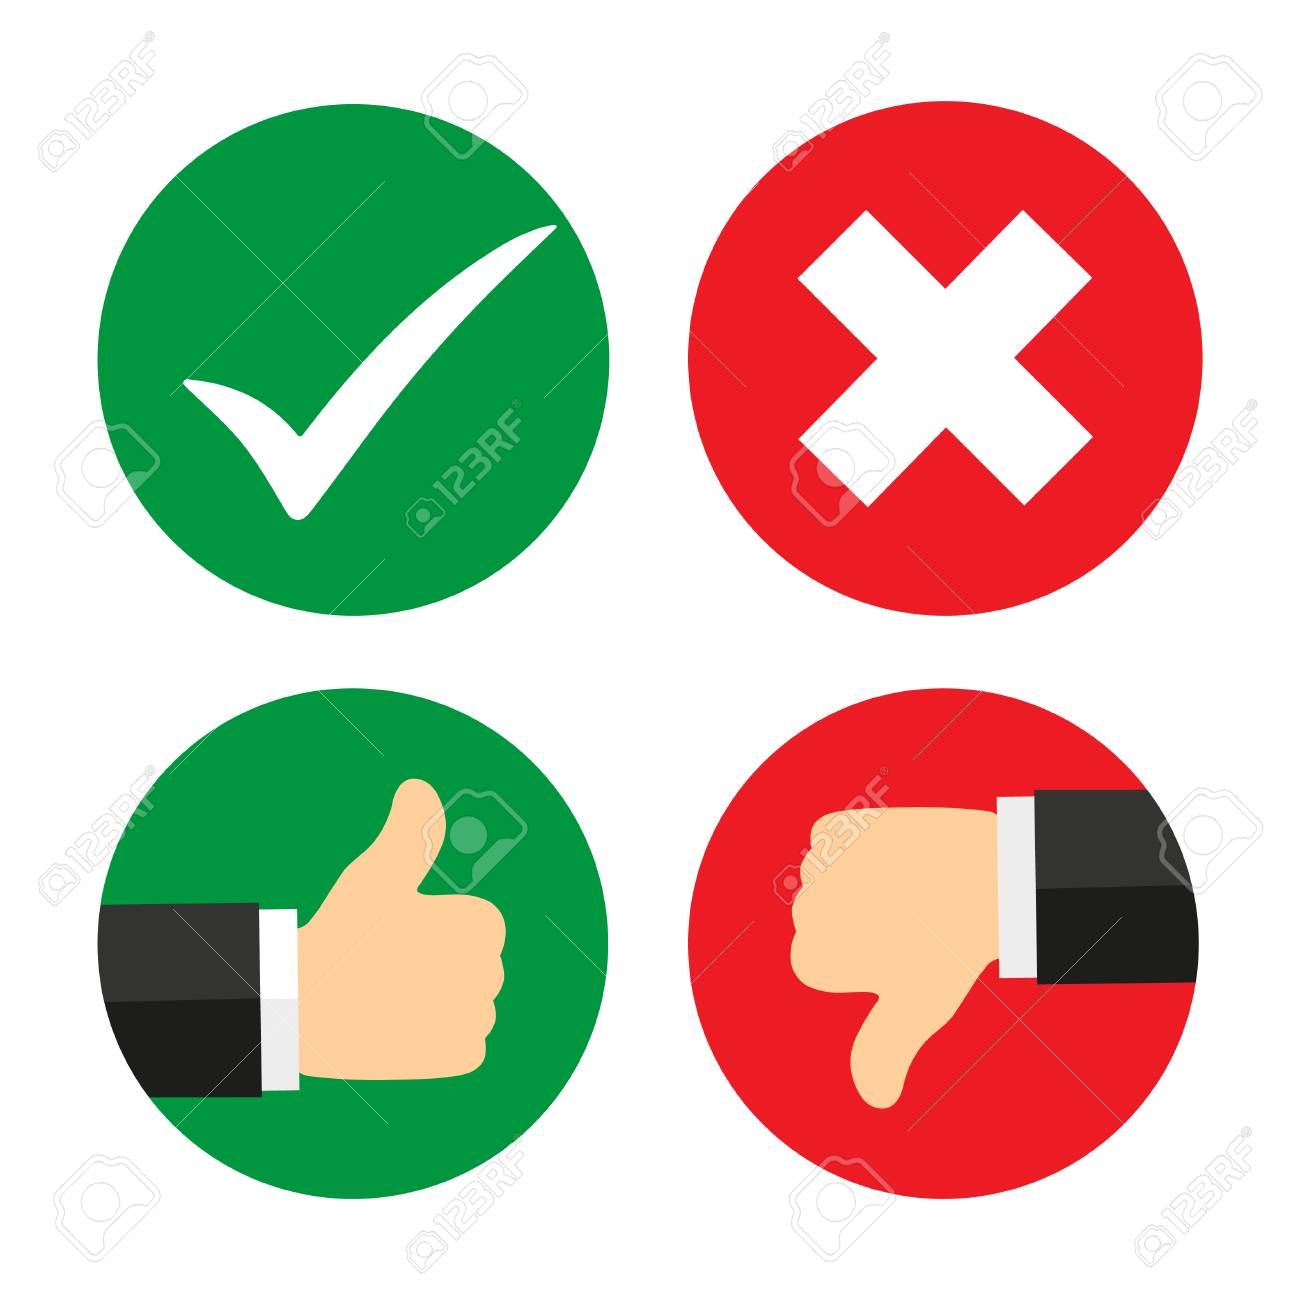 Yes, No, Thumbs up and down icons.